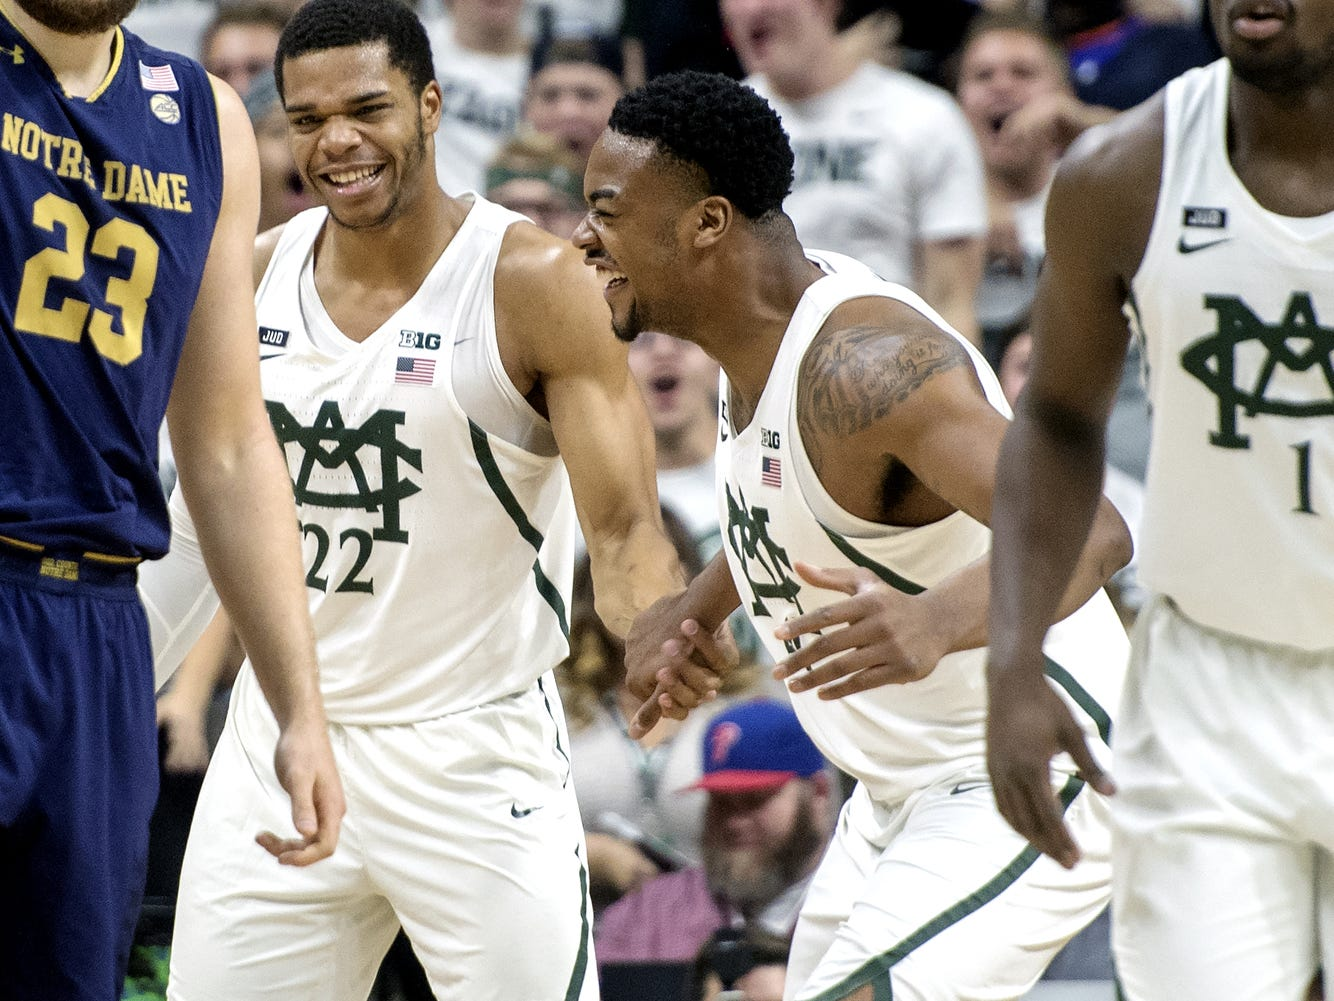 Michigan State's Miles Bridges, left, celebrates after his dunk with teammate Nick Ward during the first half on Thursday, Nov. 30, 2017, at the Breslin Center.